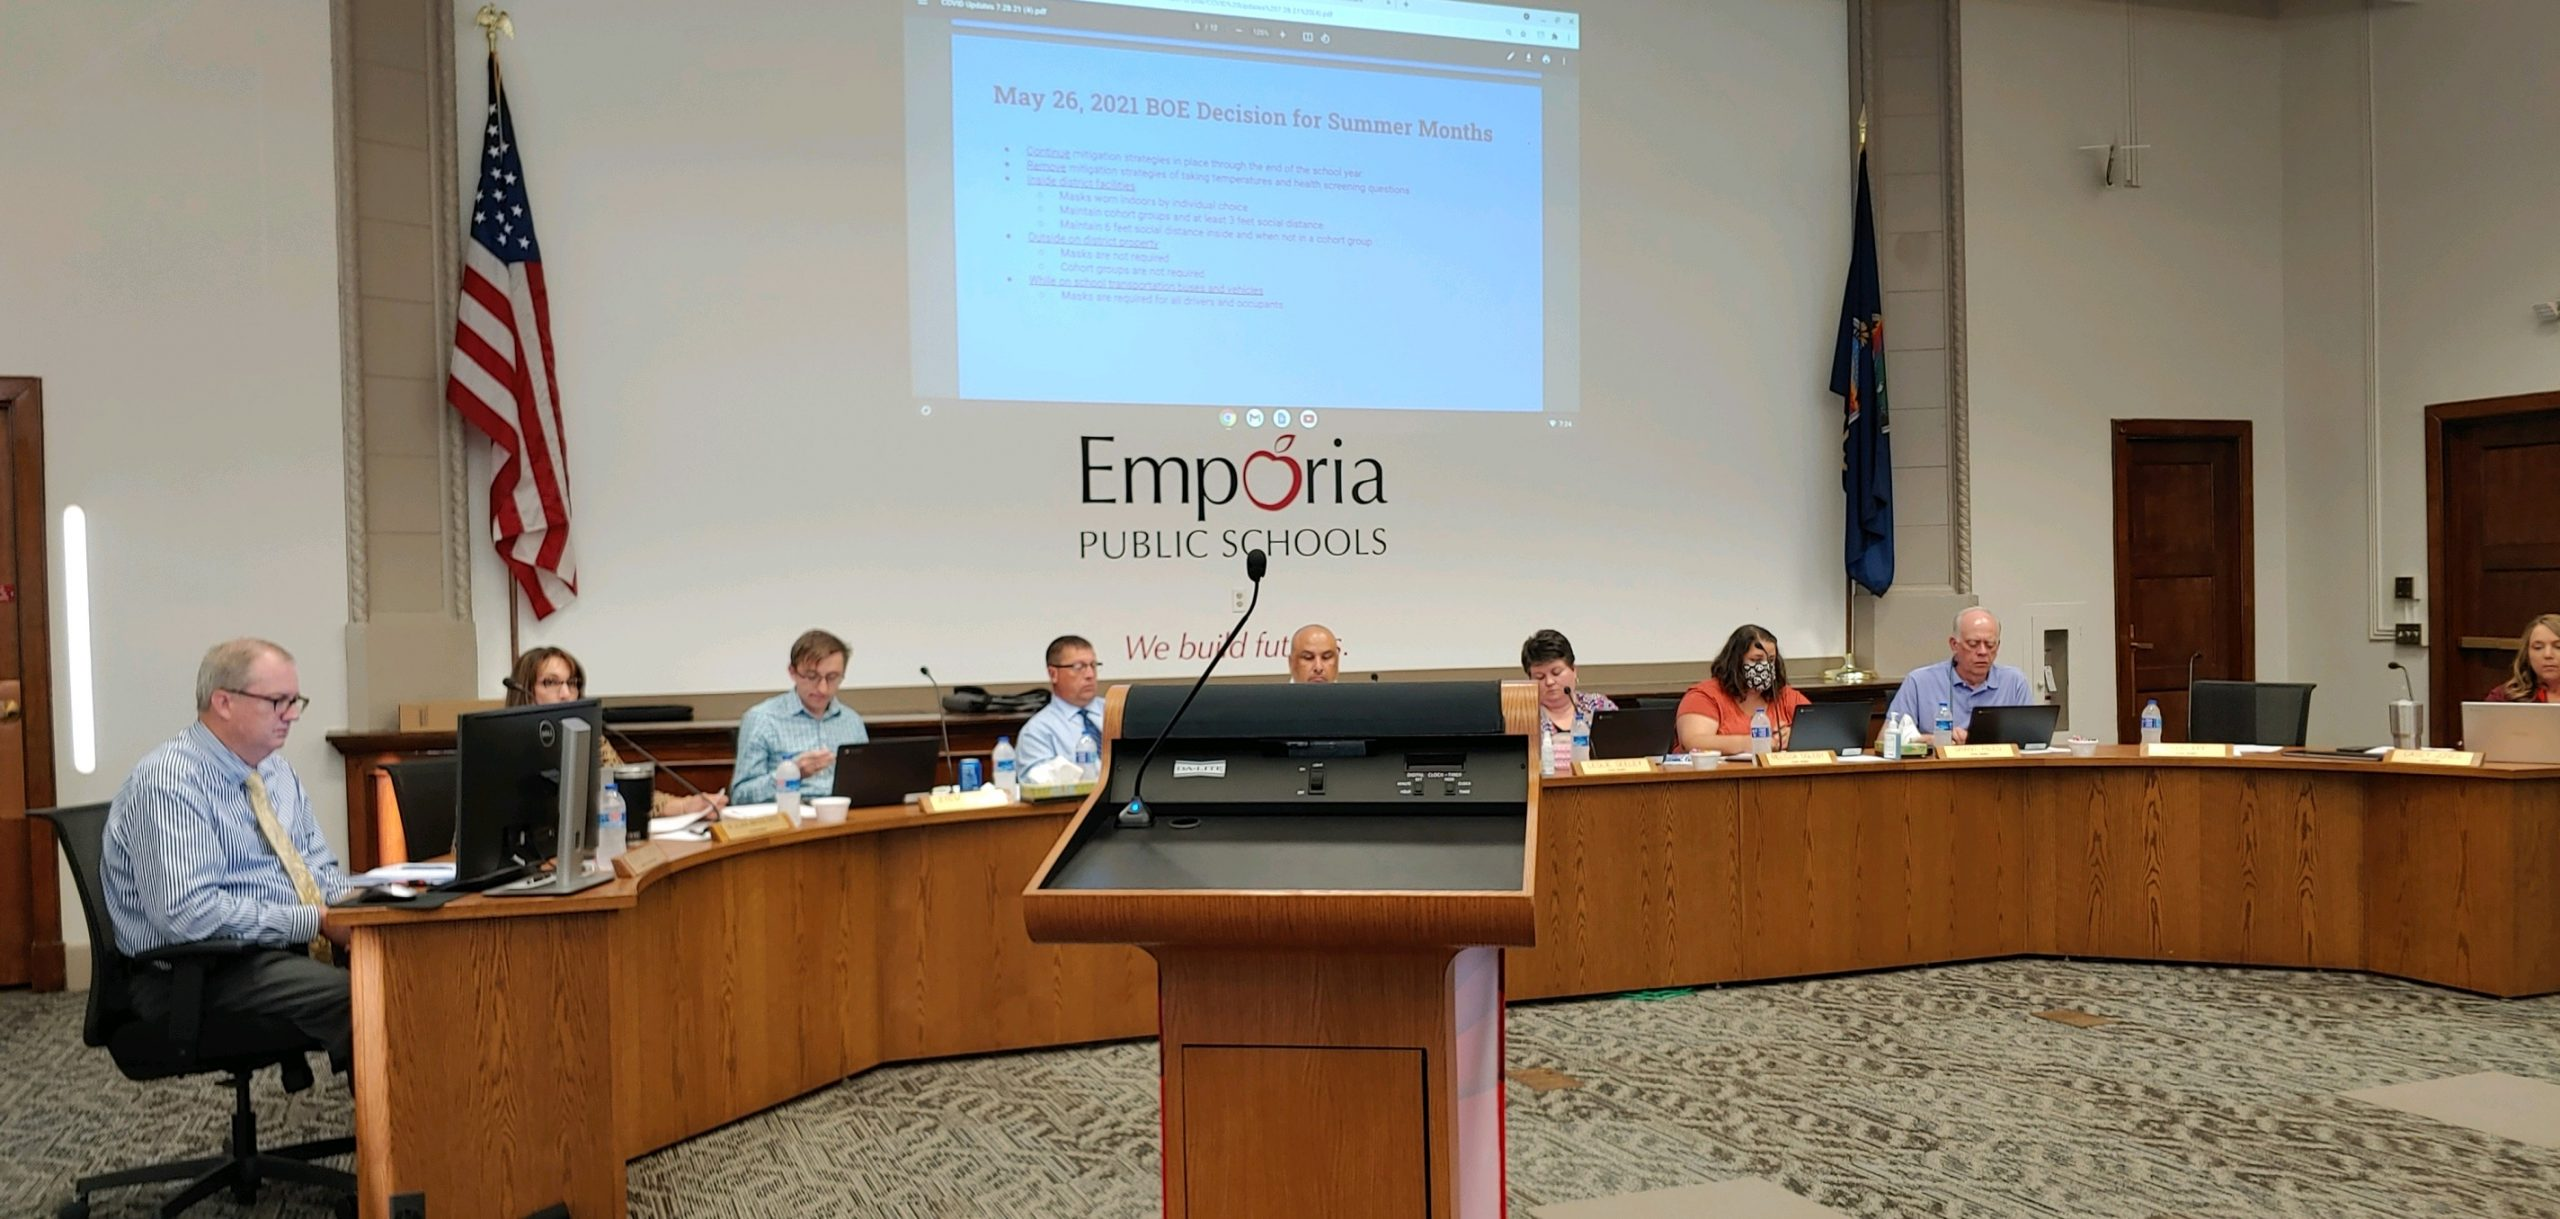 USD 253 Board approves mitigation policies for coming school year Wednesday evening